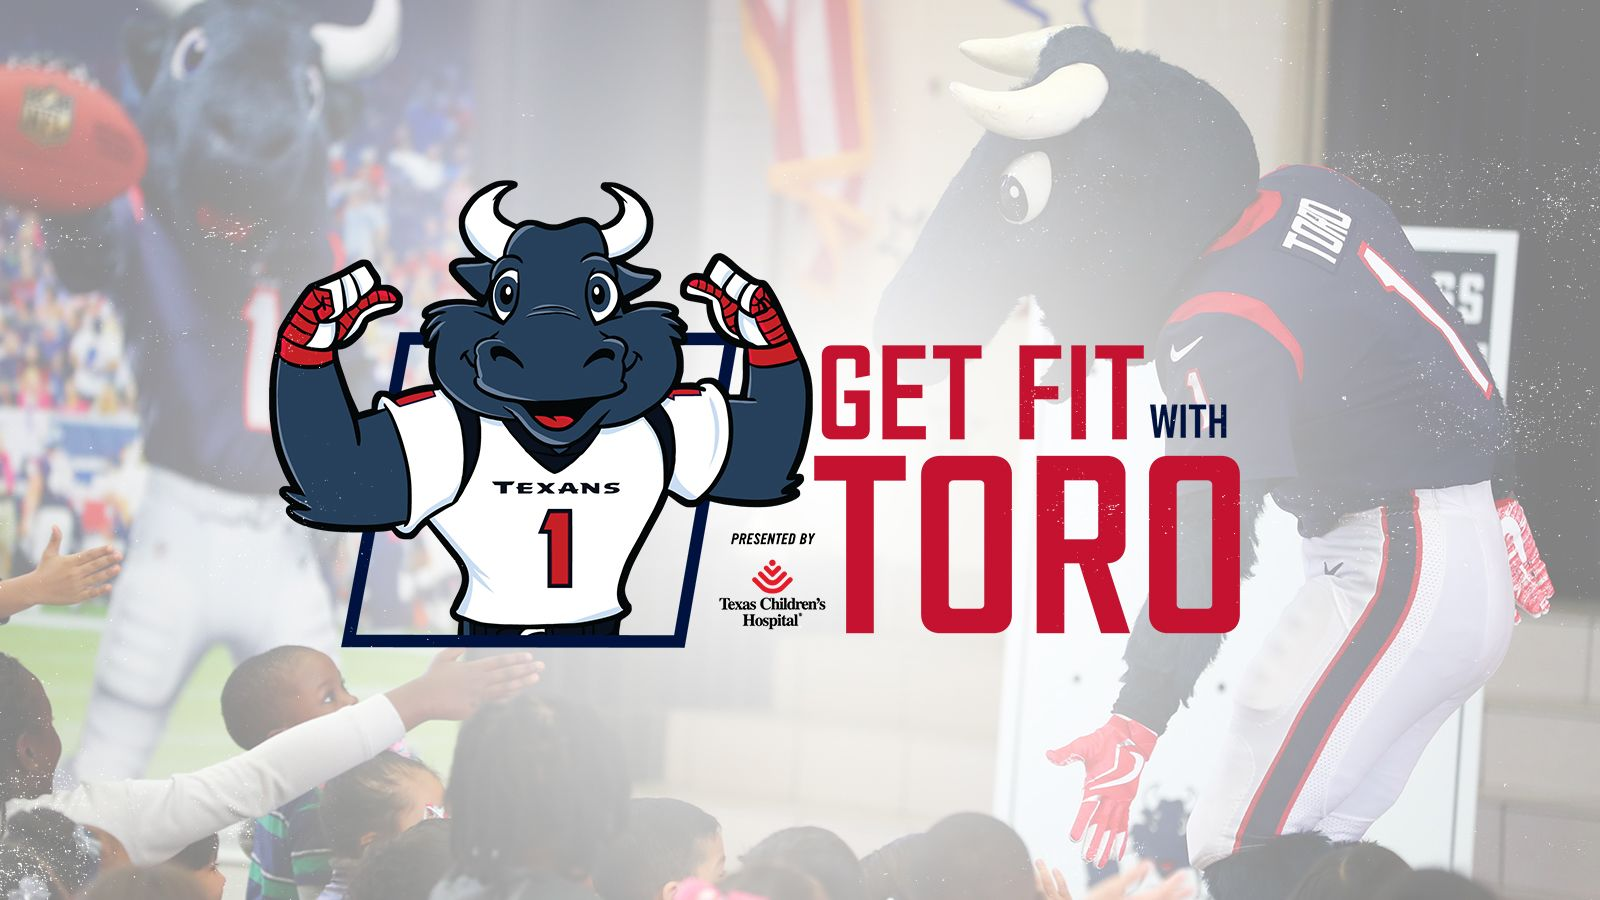 Get Fit with TORO. in partnership with Texas Children's